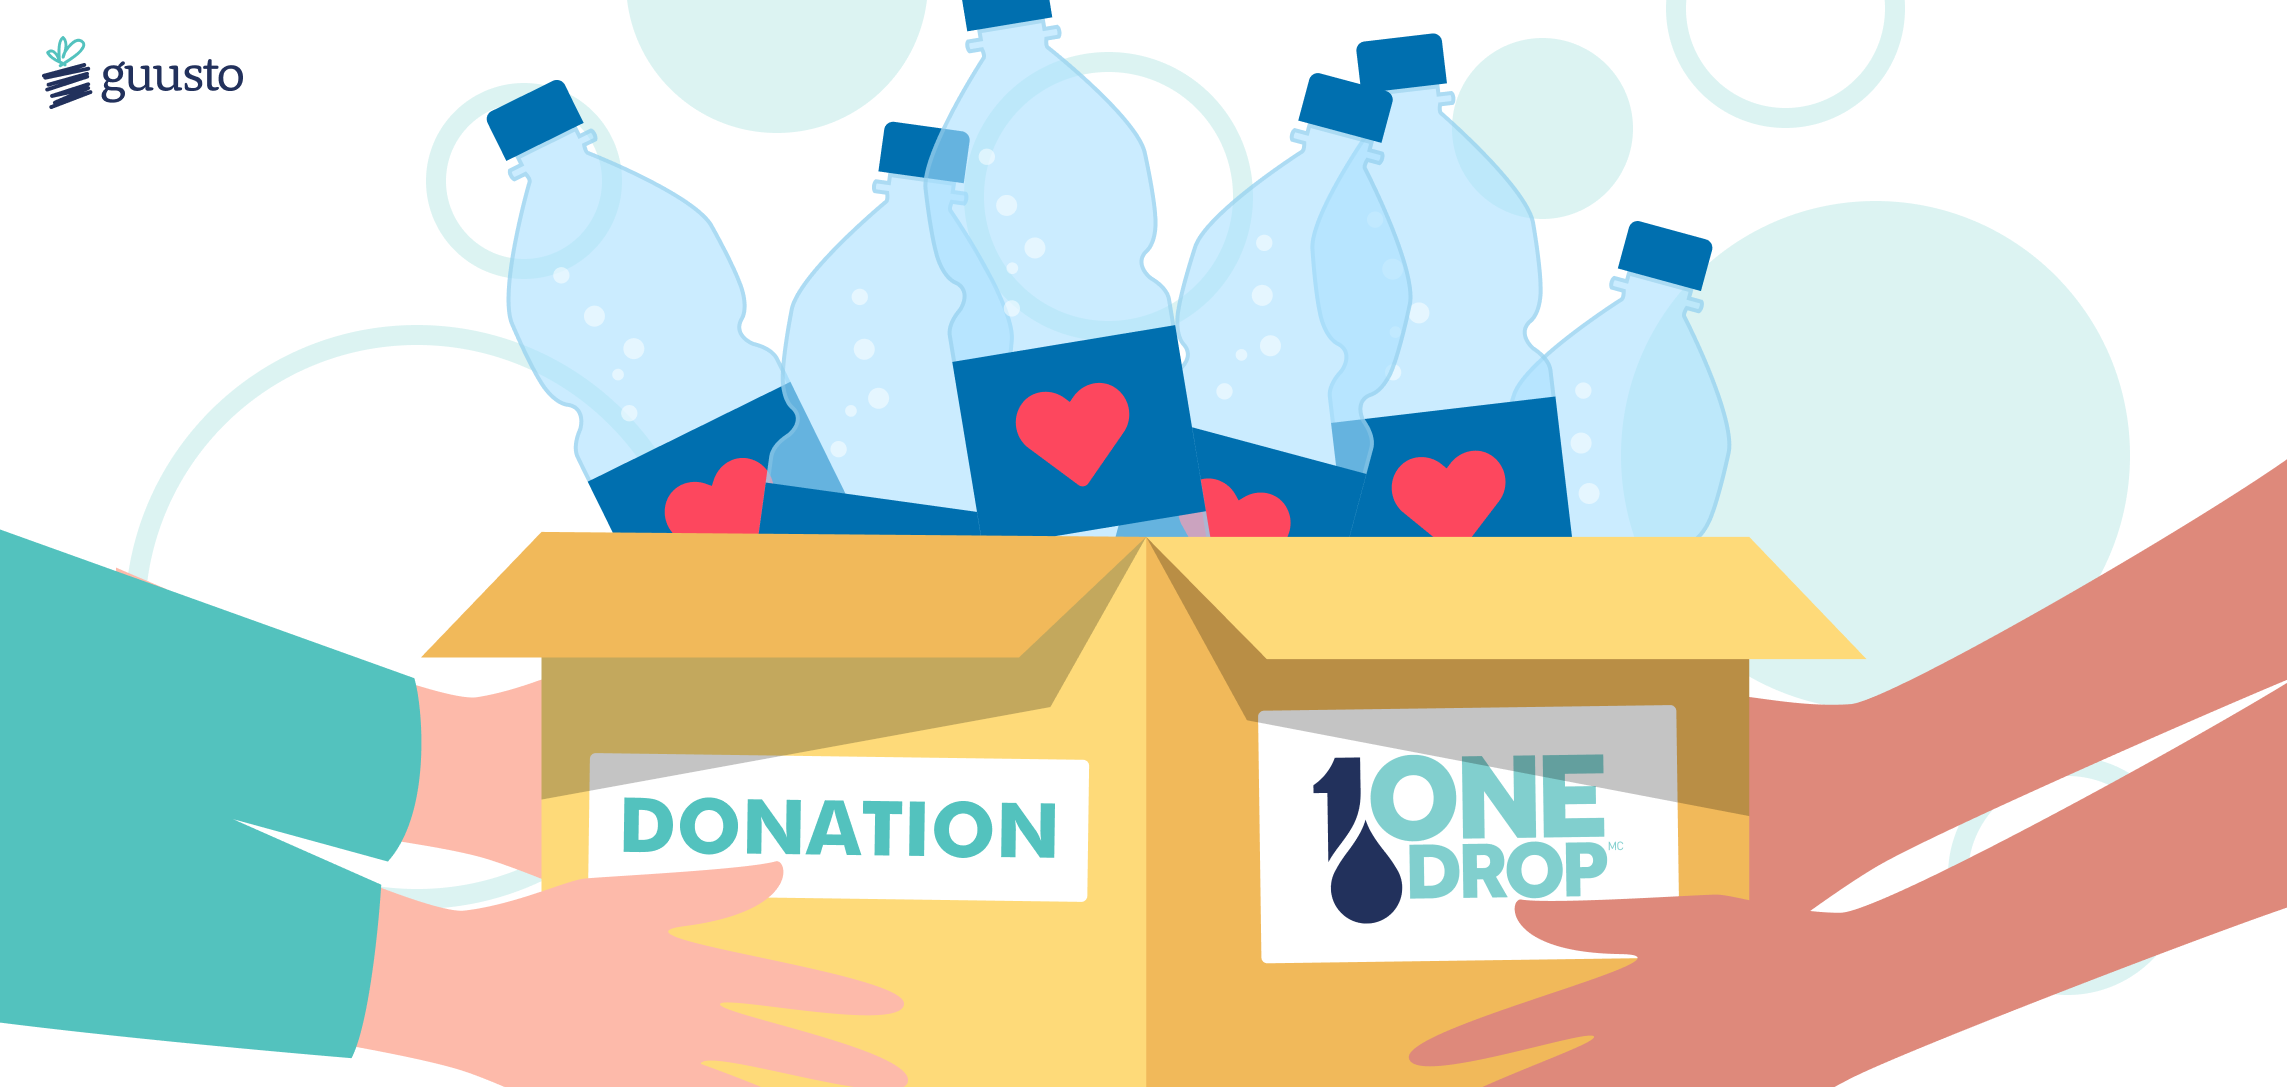 One Drop Donations: Recognition that Makes the World a Better Place